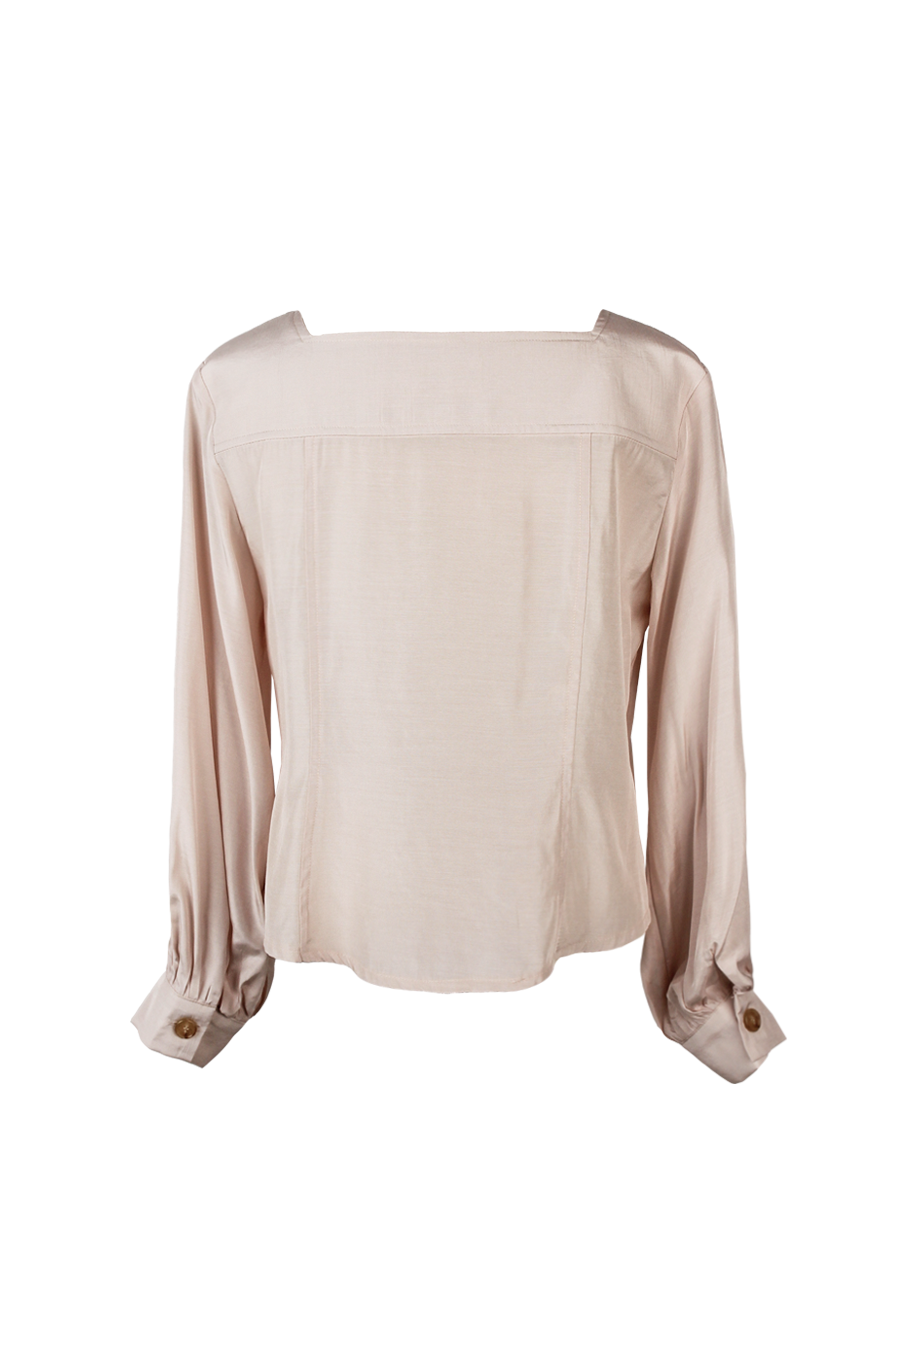 OLIVIA NZ Store online | Eleanor Retro Blouse / Pink